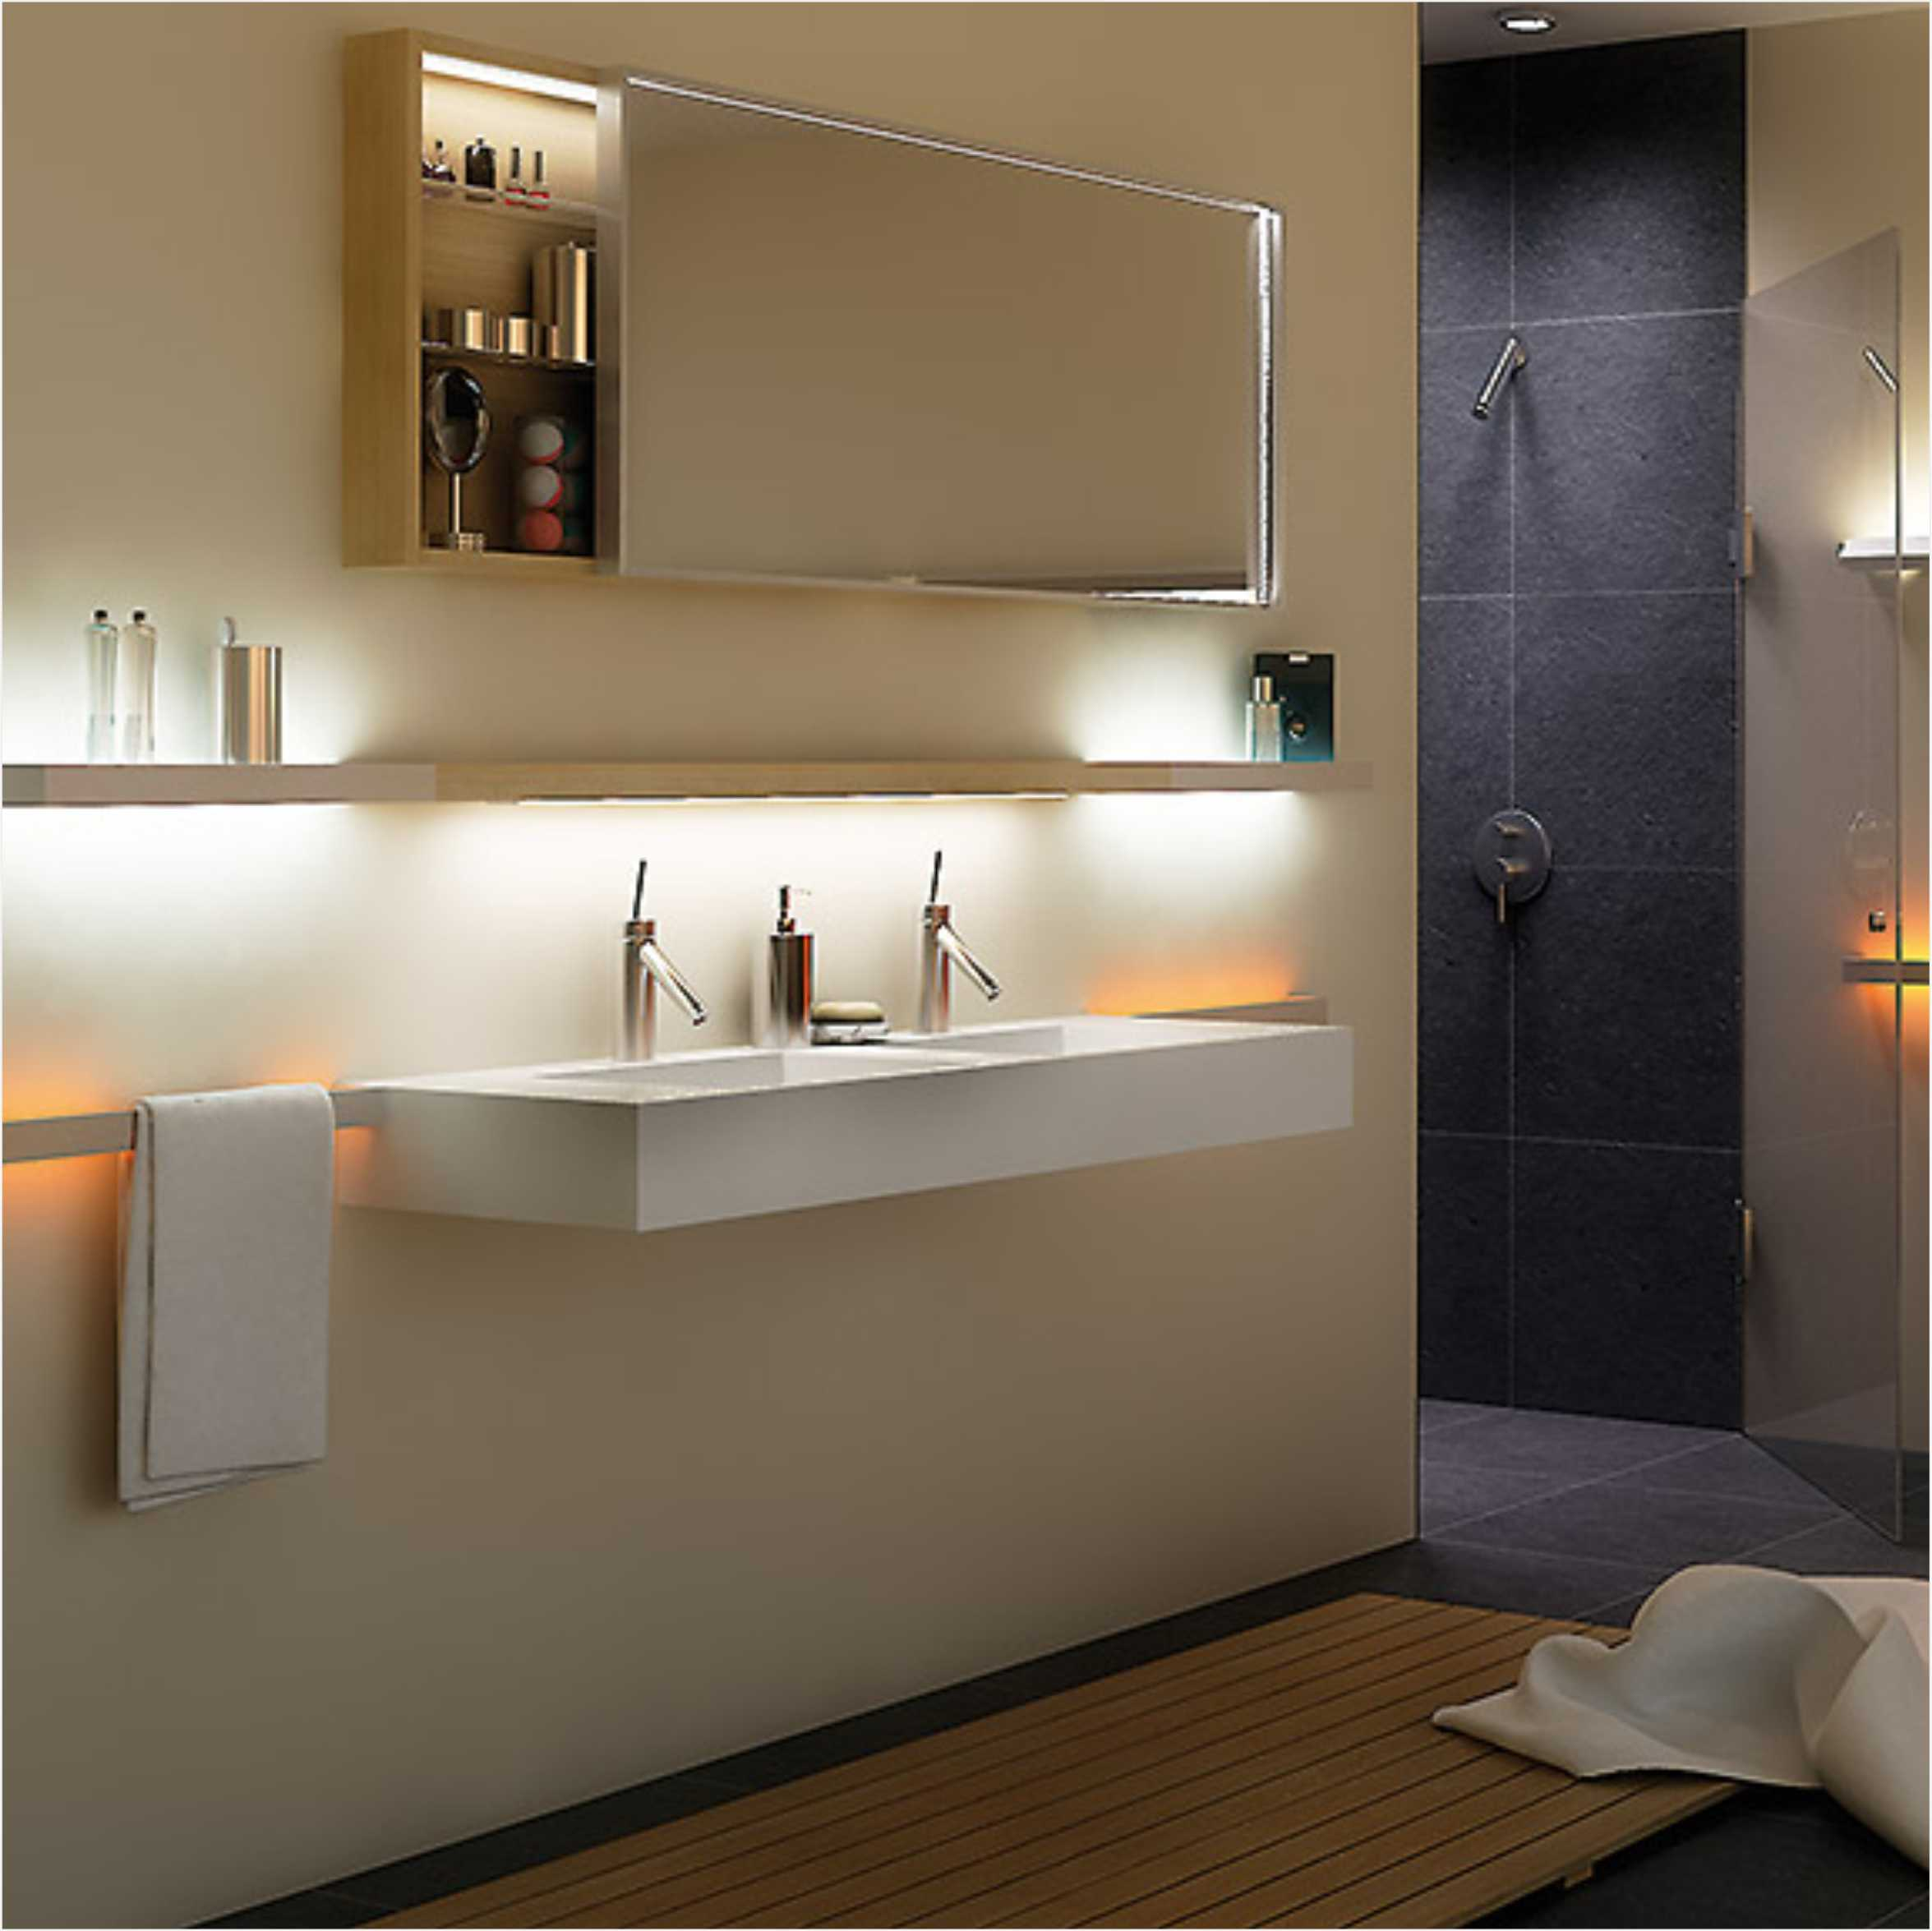 Illuminated LED Wall Light For Towel Hanging 6782